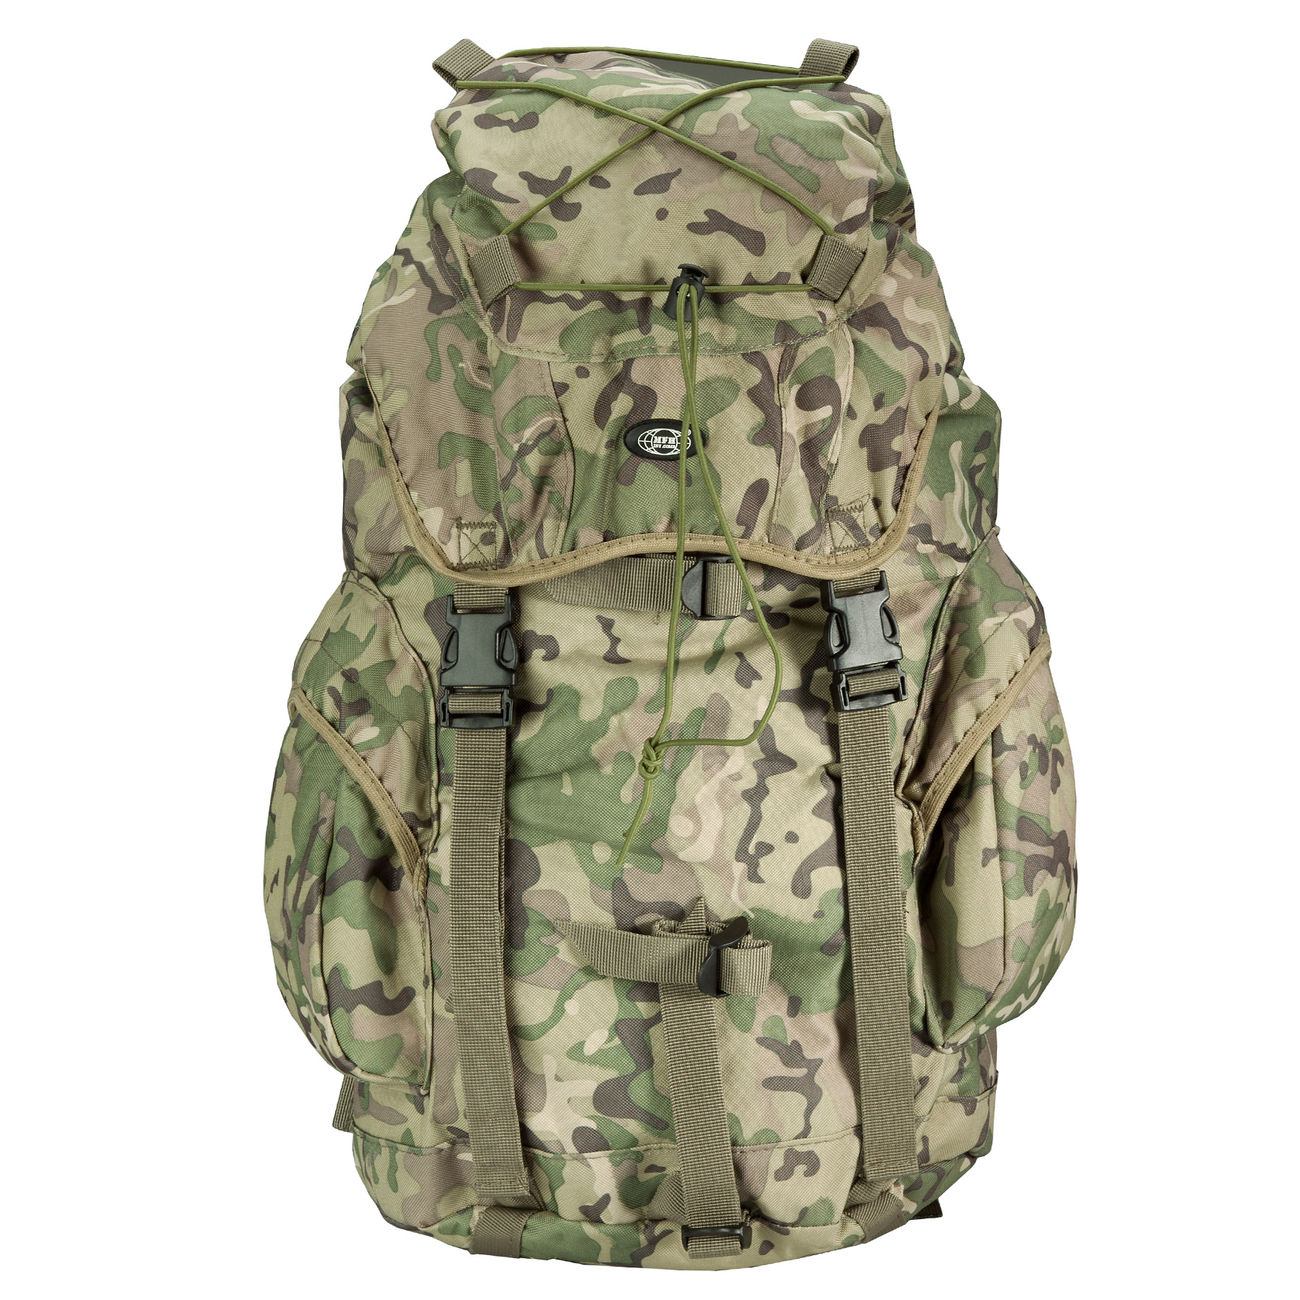 MFH Rucksack Recon III operation-camo 1